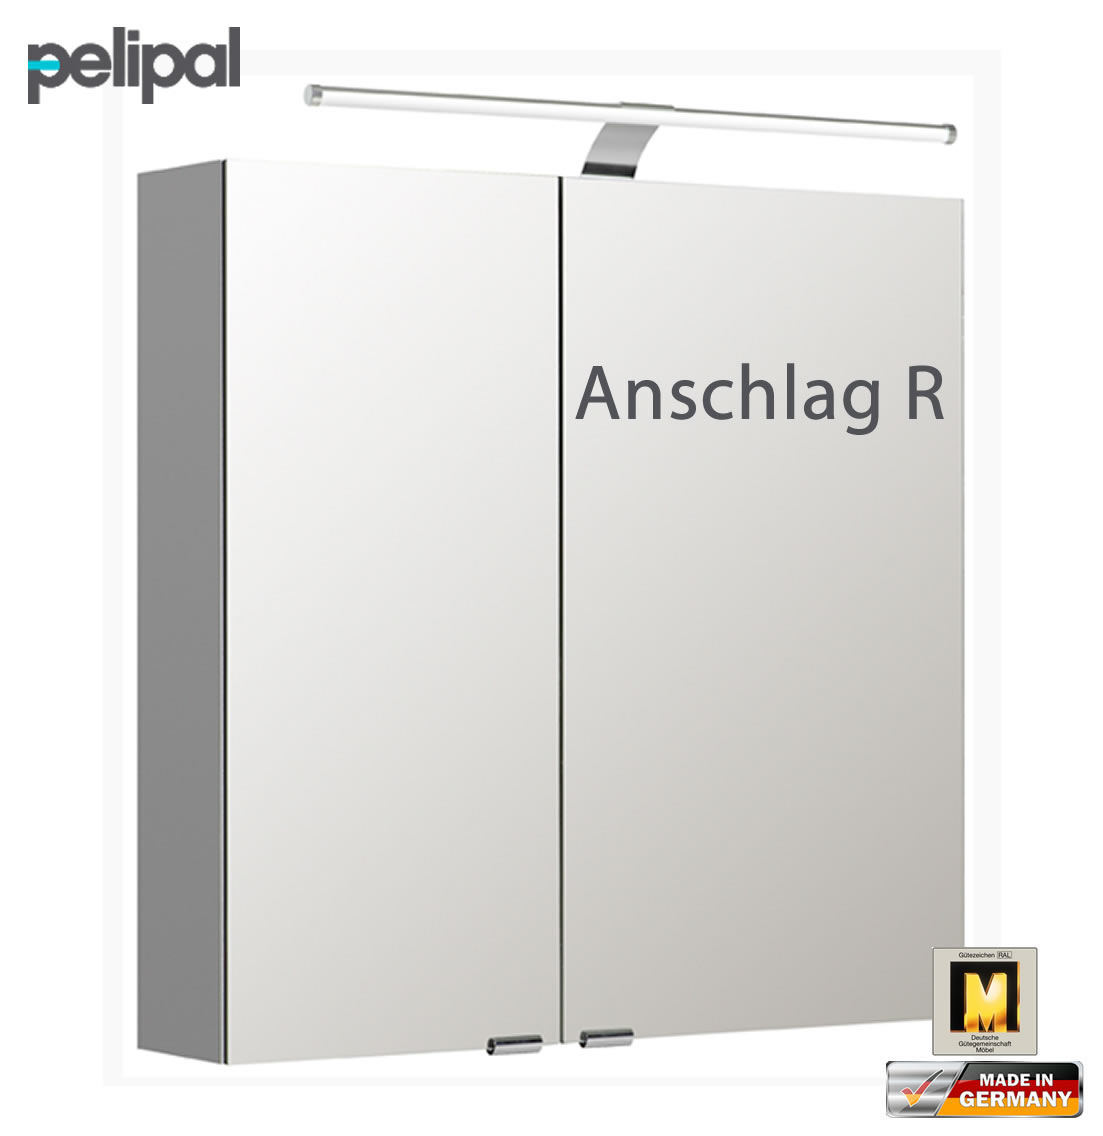 pelipal neutraler spiegelschrank 70 cm mit led aufsatzleuchte s5 spsd 08 impuls home. Black Bedroom Furniture Sets. Home Design Ideas